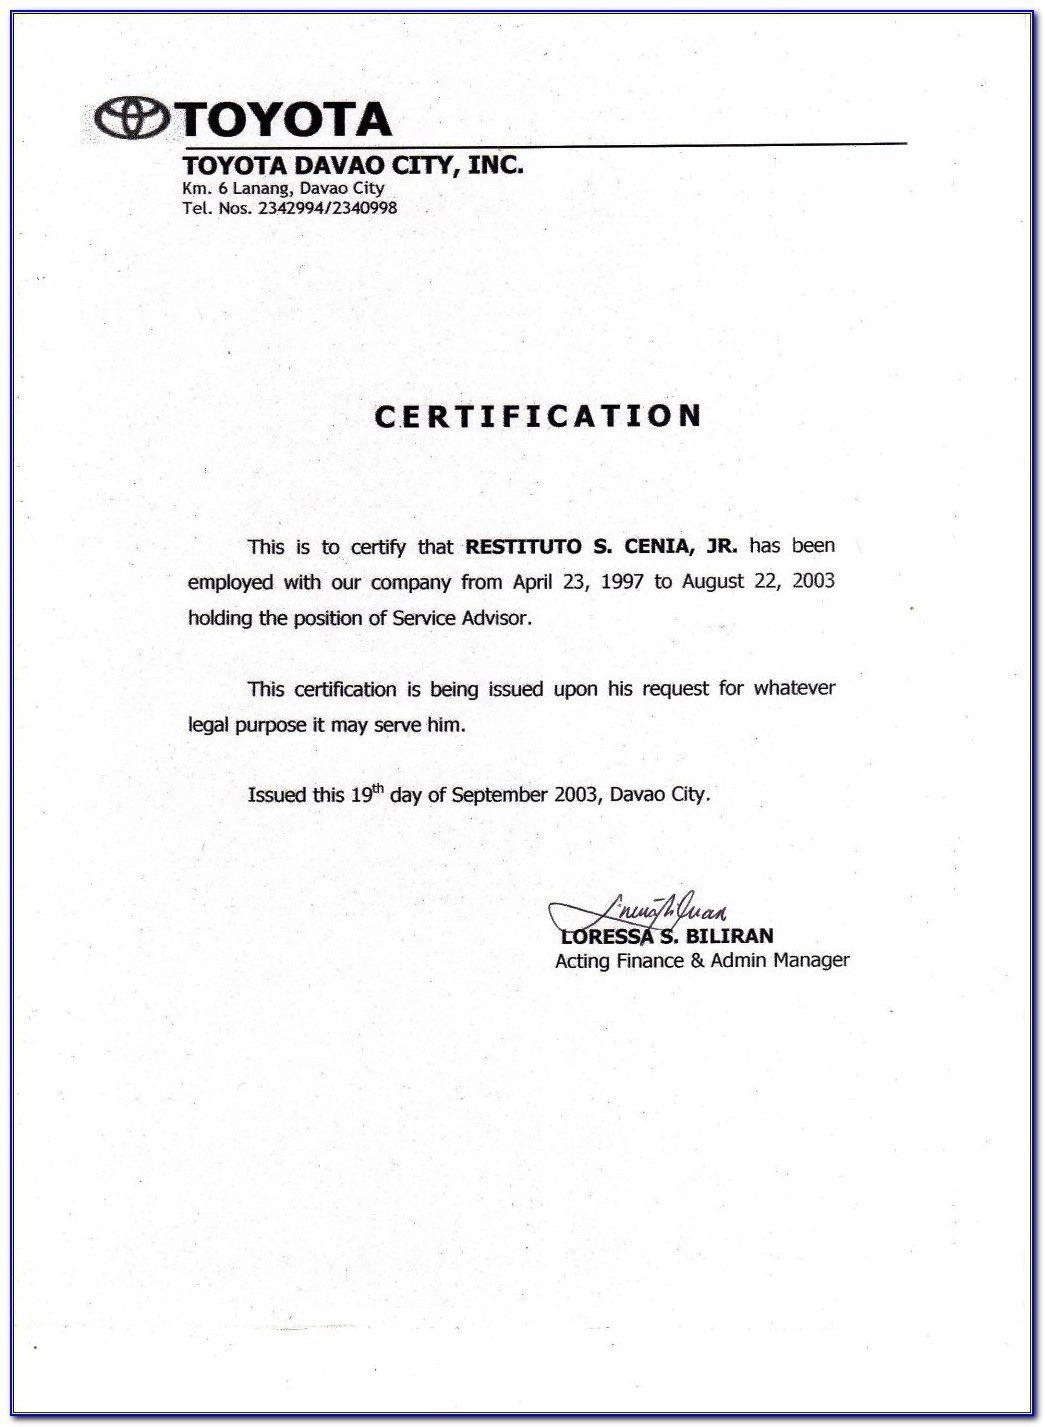 Certificate Of Employment Template Free